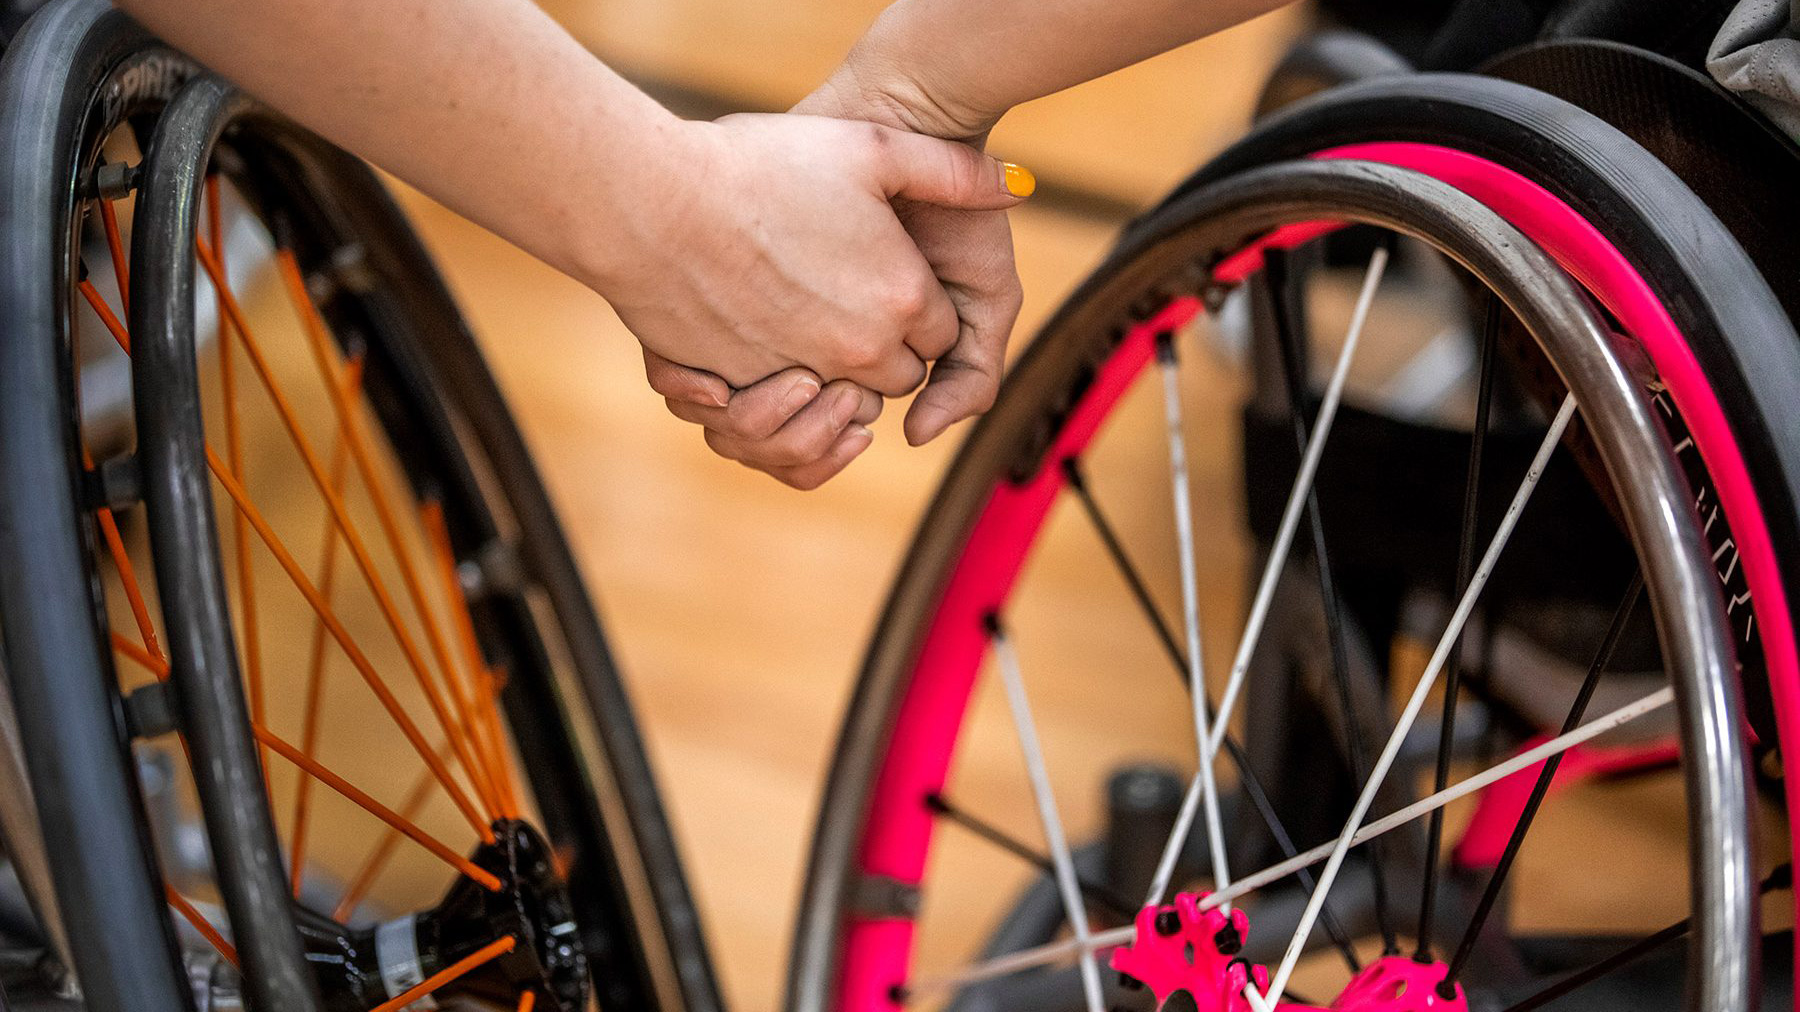 wheelchair athletes holding hands - closeup of hands and chairs' wheels. Photo by Fred Zwicky.